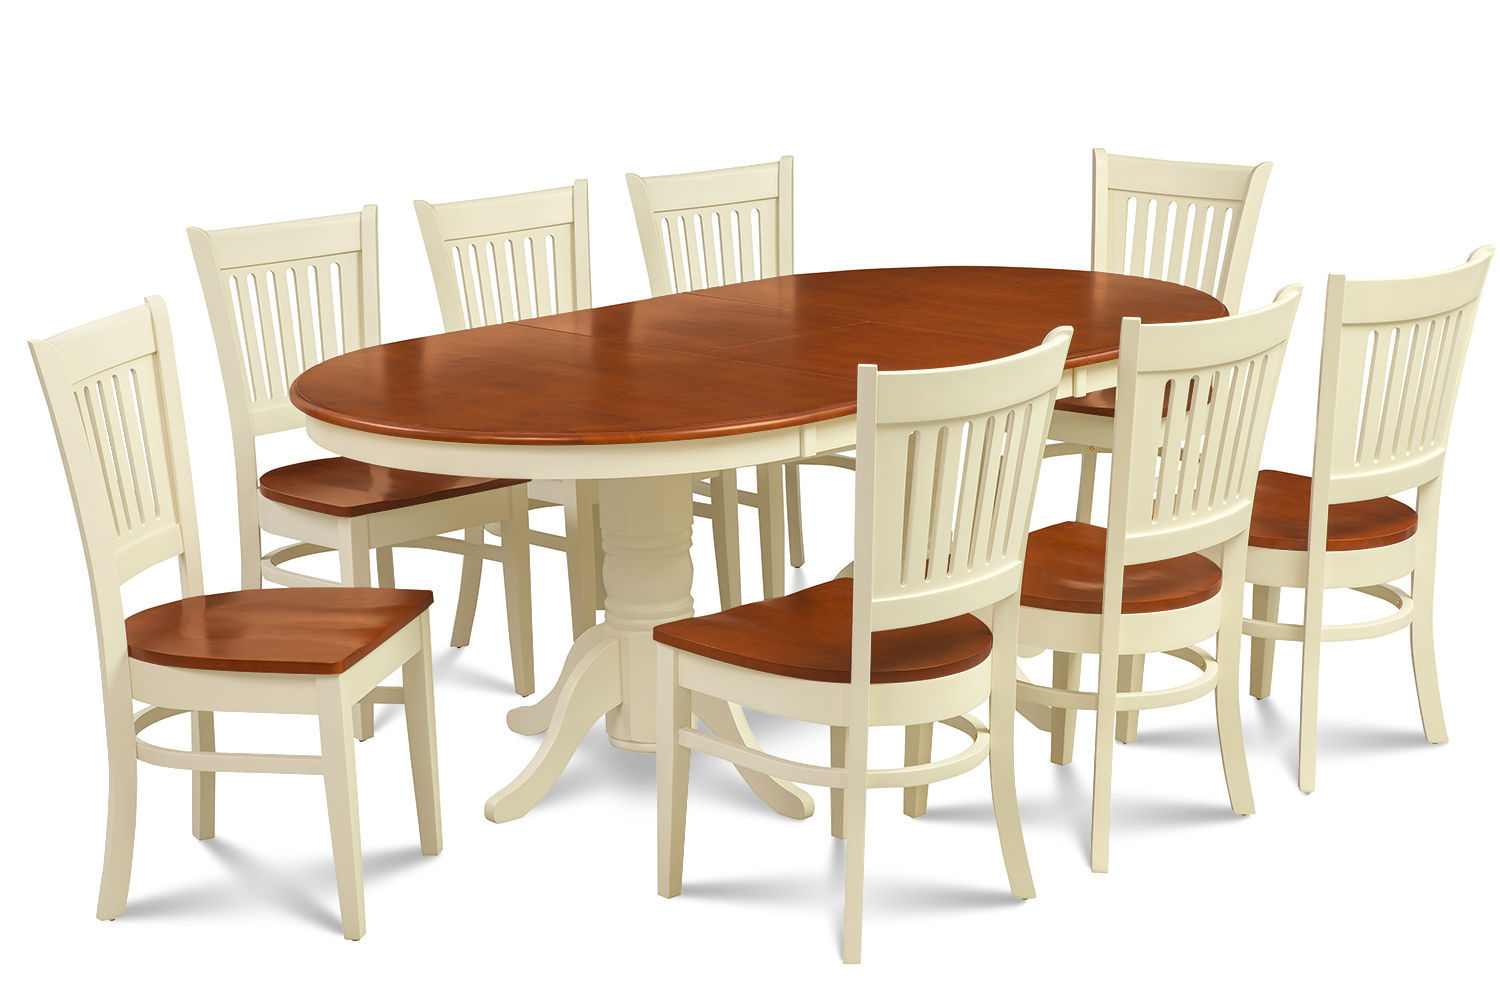 Wooden Dining Table Set ~ Piece oval dining room table set w wooden chair in